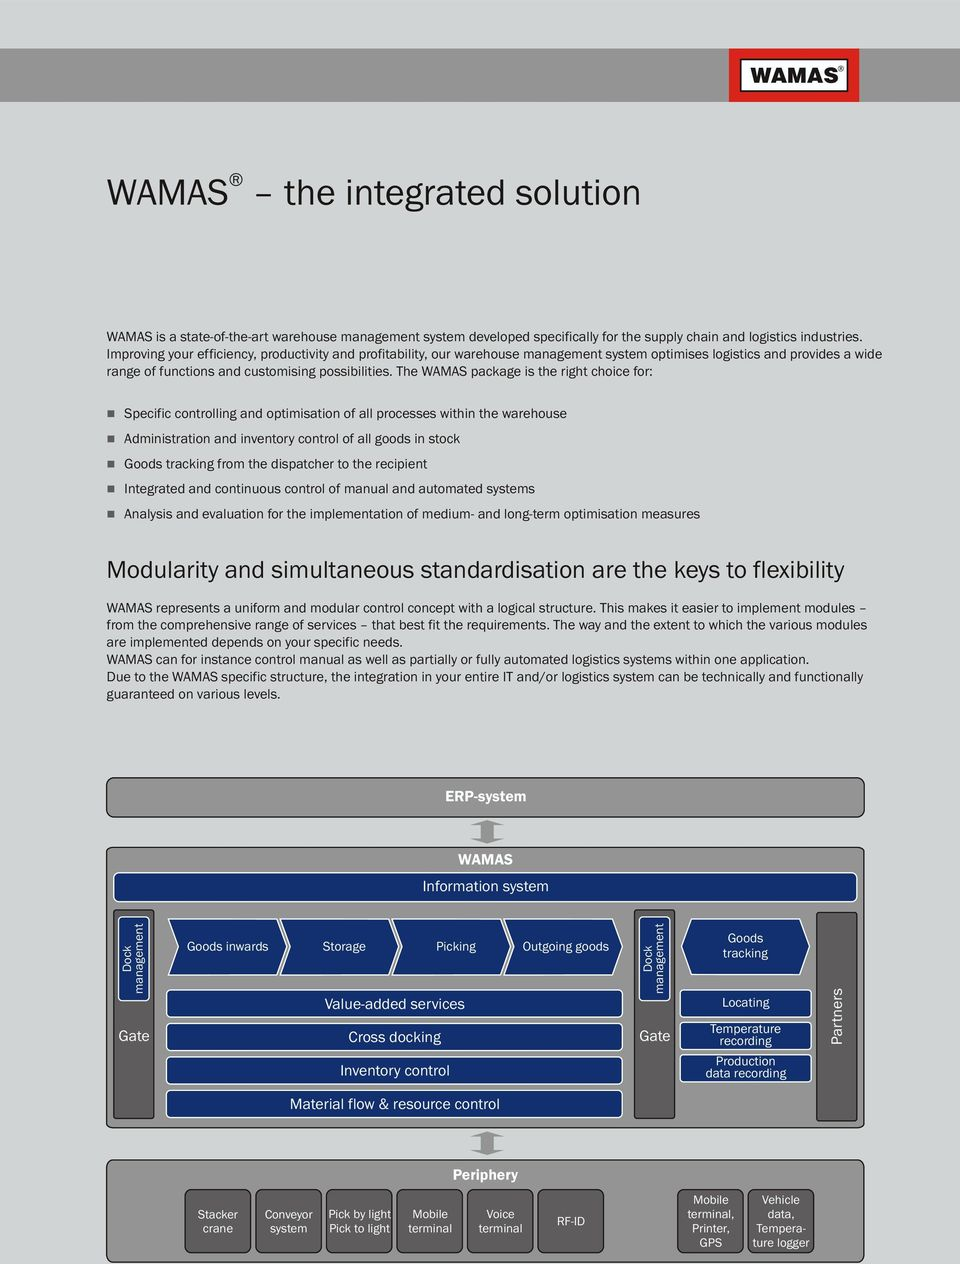 The WAMAS package is the right choice for: Specific controlling and optimisation of all processes within the warehouse Administration and inventory control of all goods in stock Goods tracking from